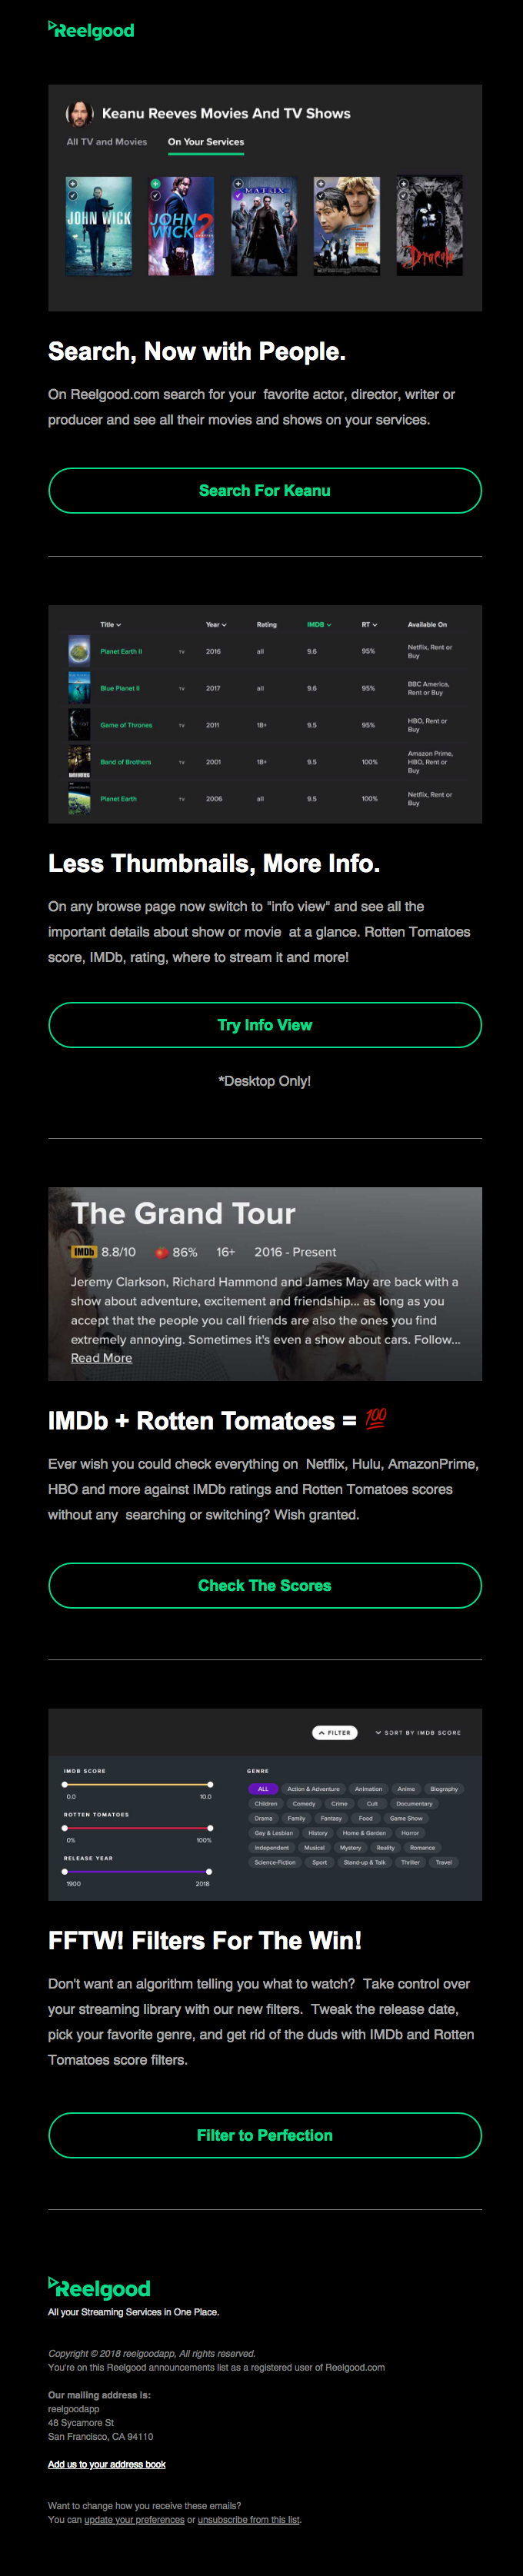 Reelgood dark mode email